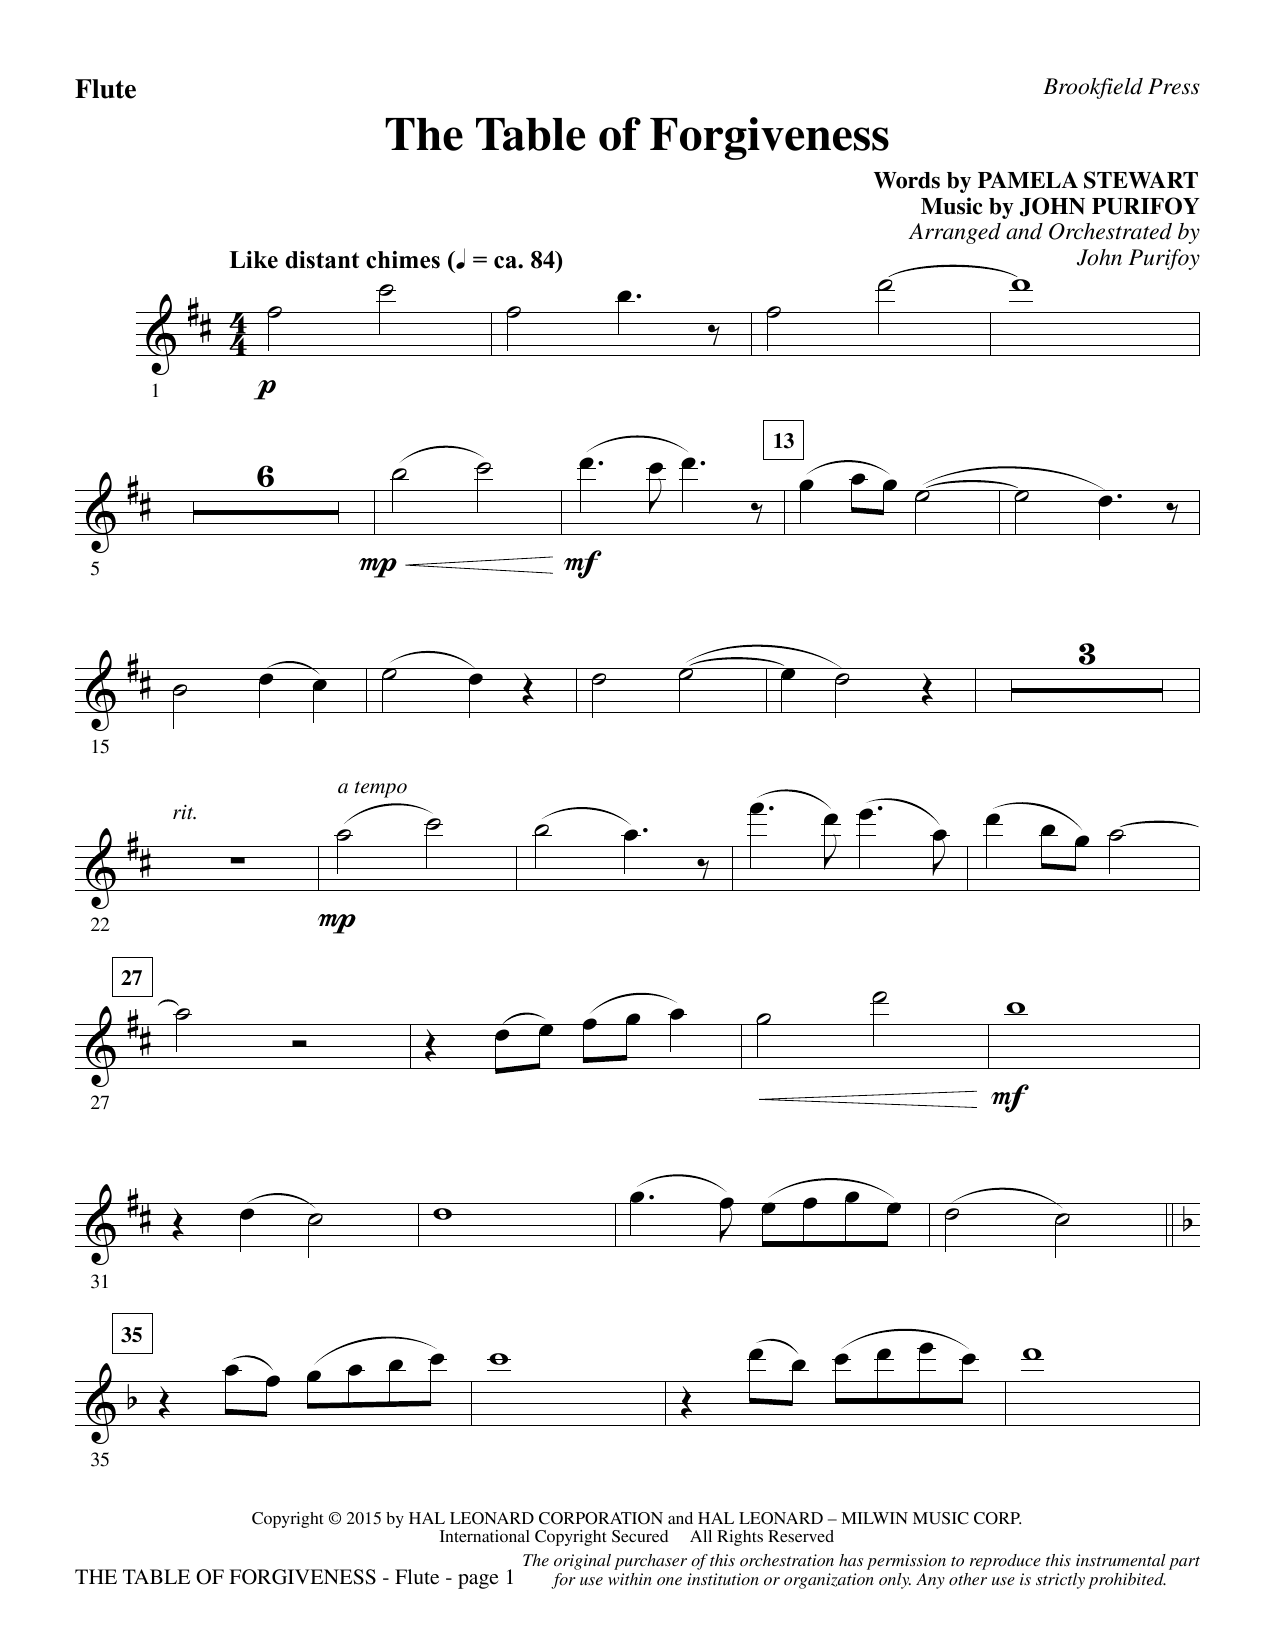 The Table of Forgiveness - Flute Sheet Music